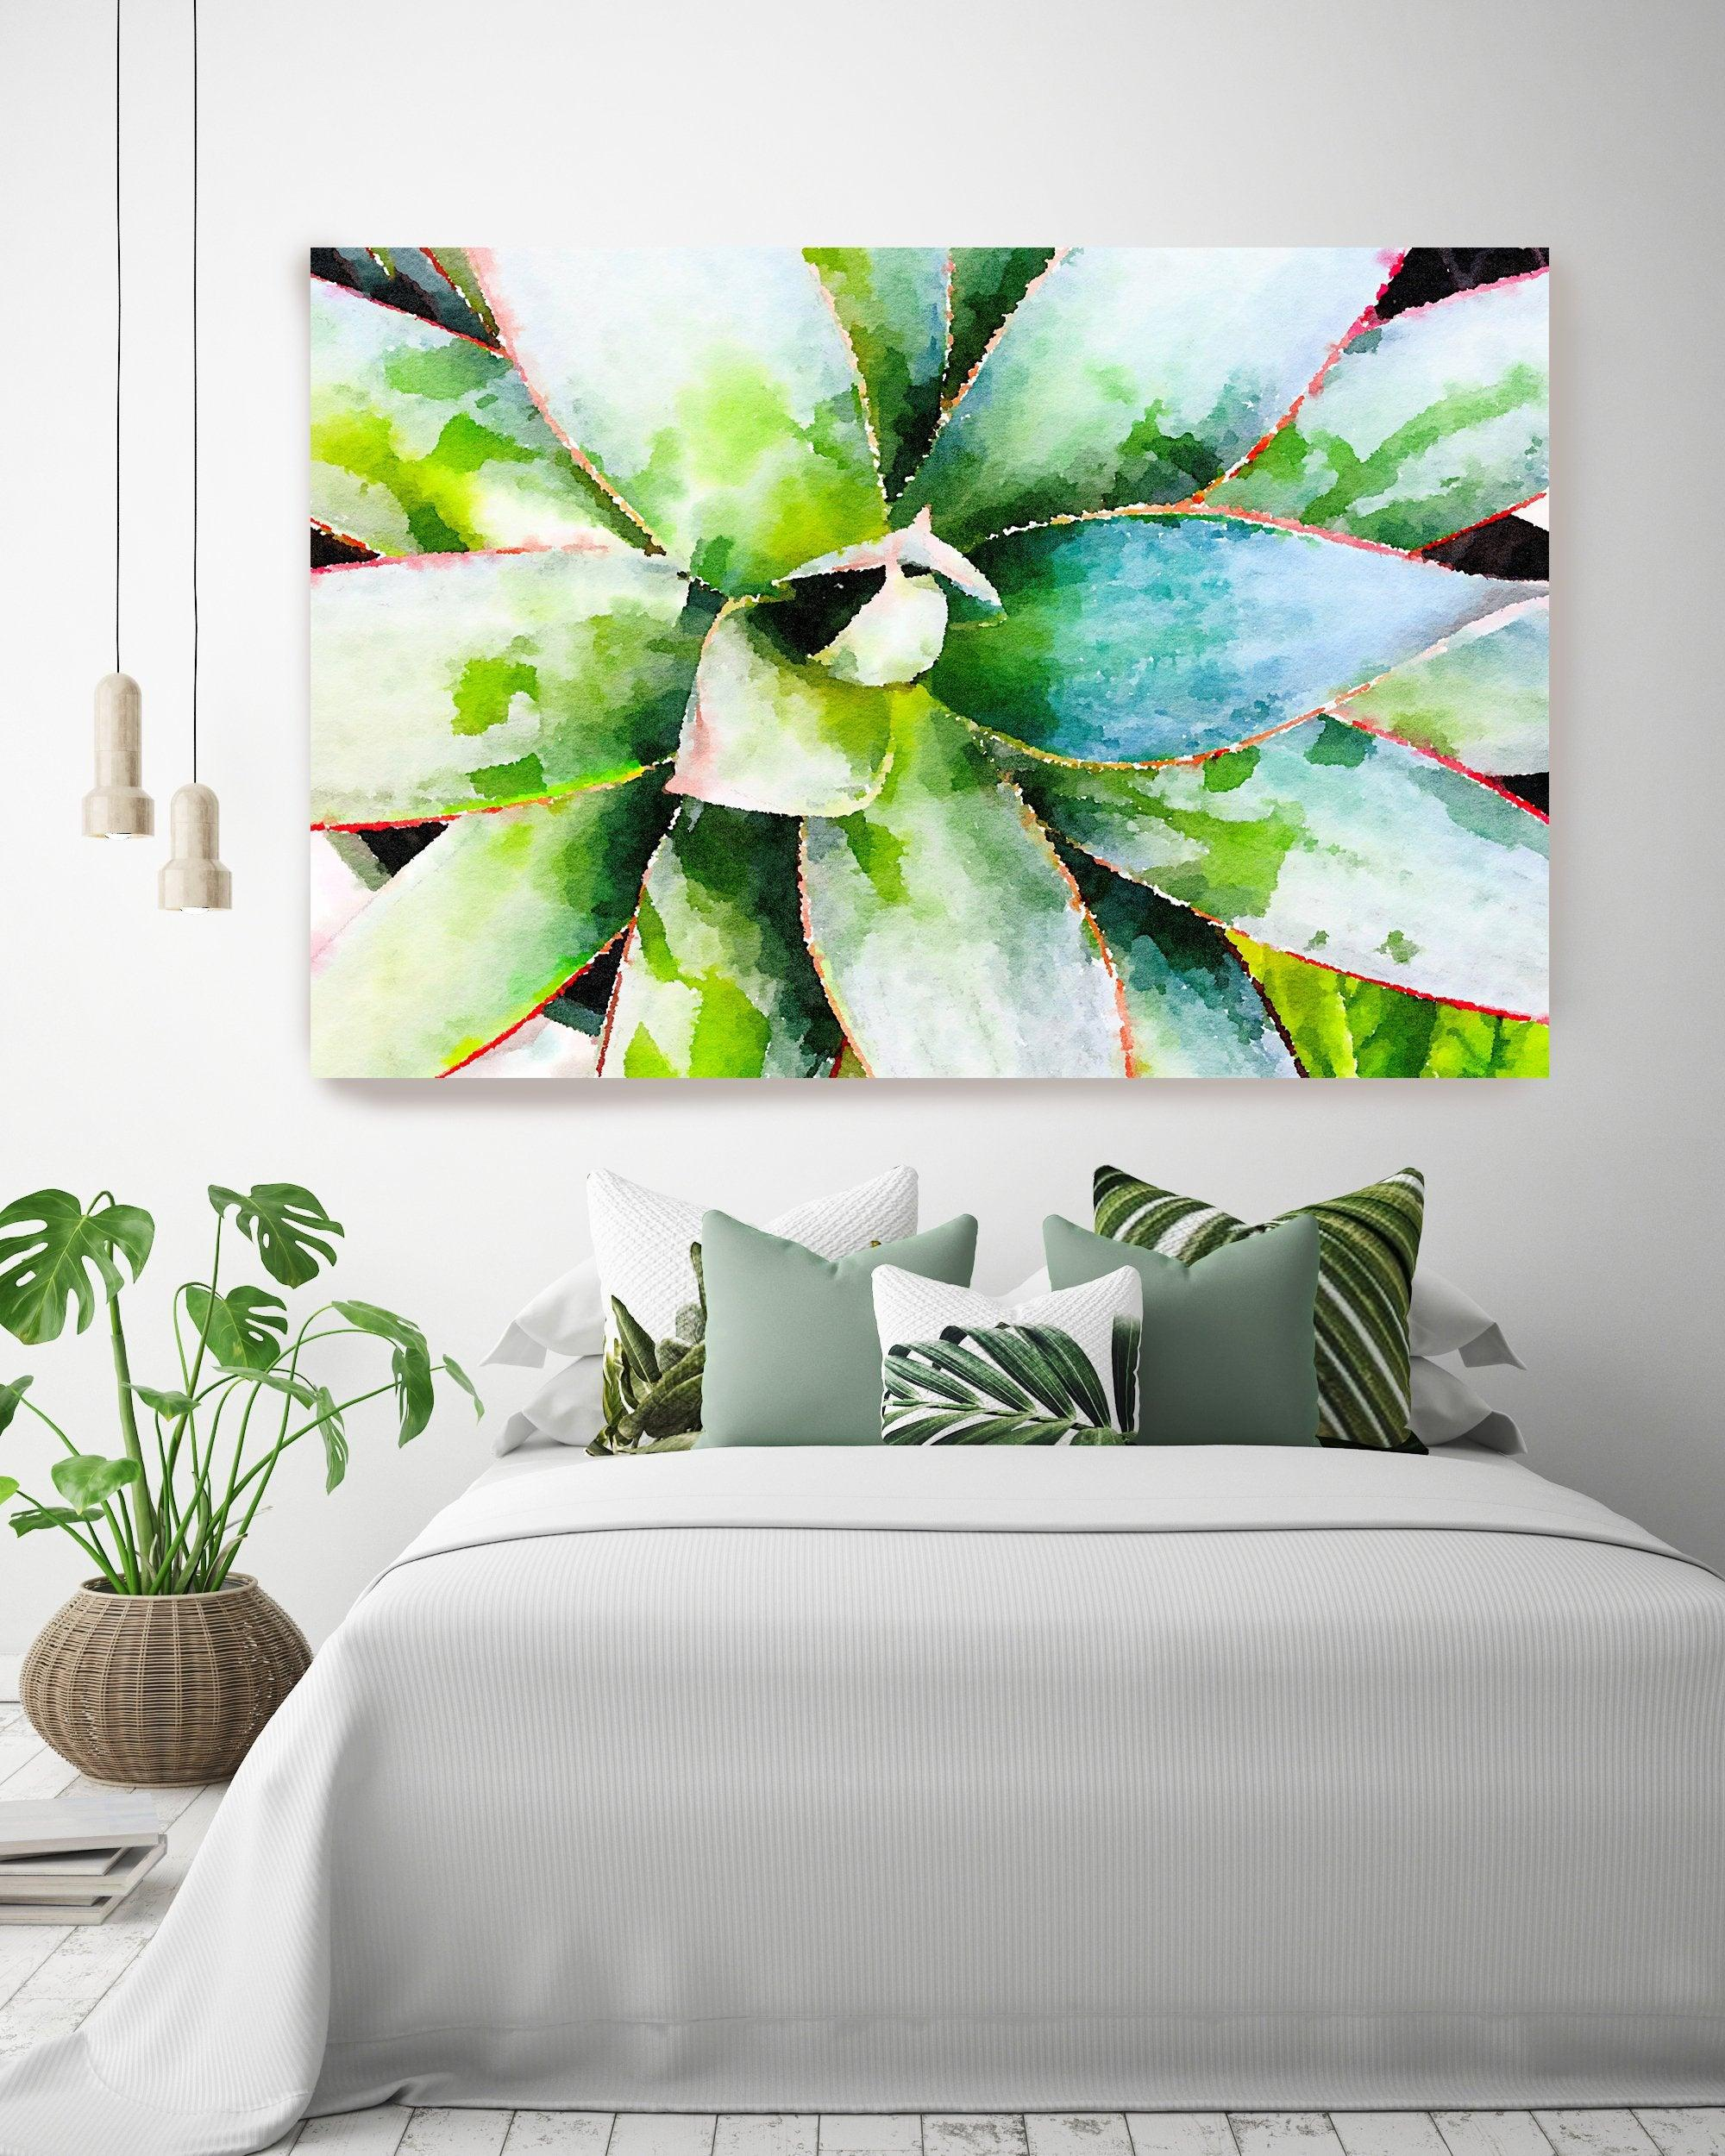 Elegant Succulent Green Succulent Painting Hand Embellished Giclee Art on Canvas